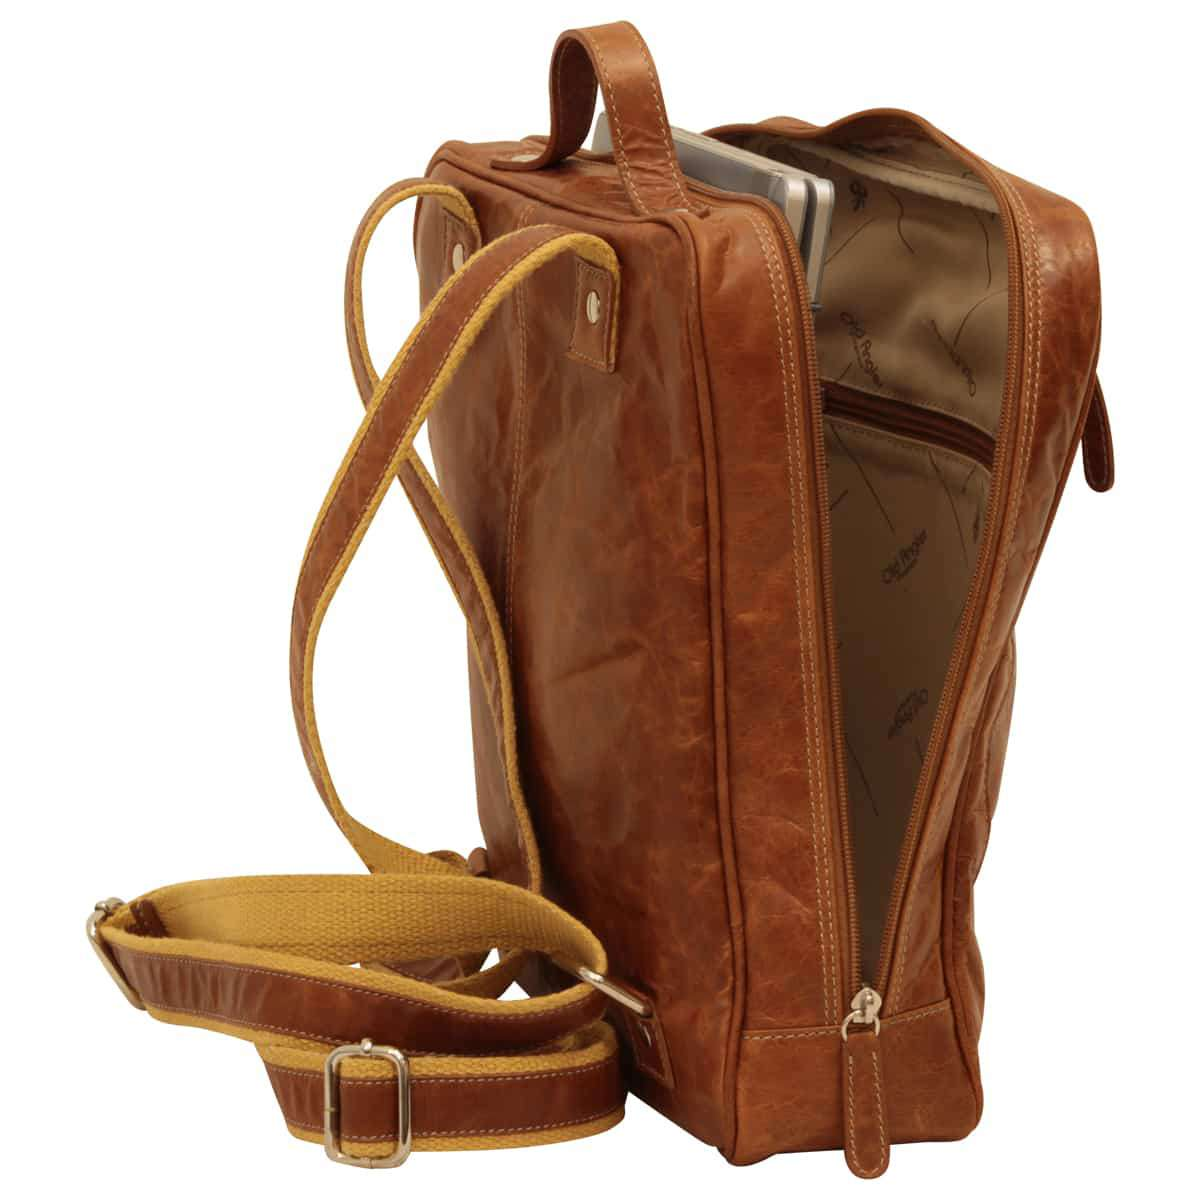 Oiled Calfskin Leather Laptop backpack with zip closure - Brown Colonial | 405261CO UK | Old Angler Firenze